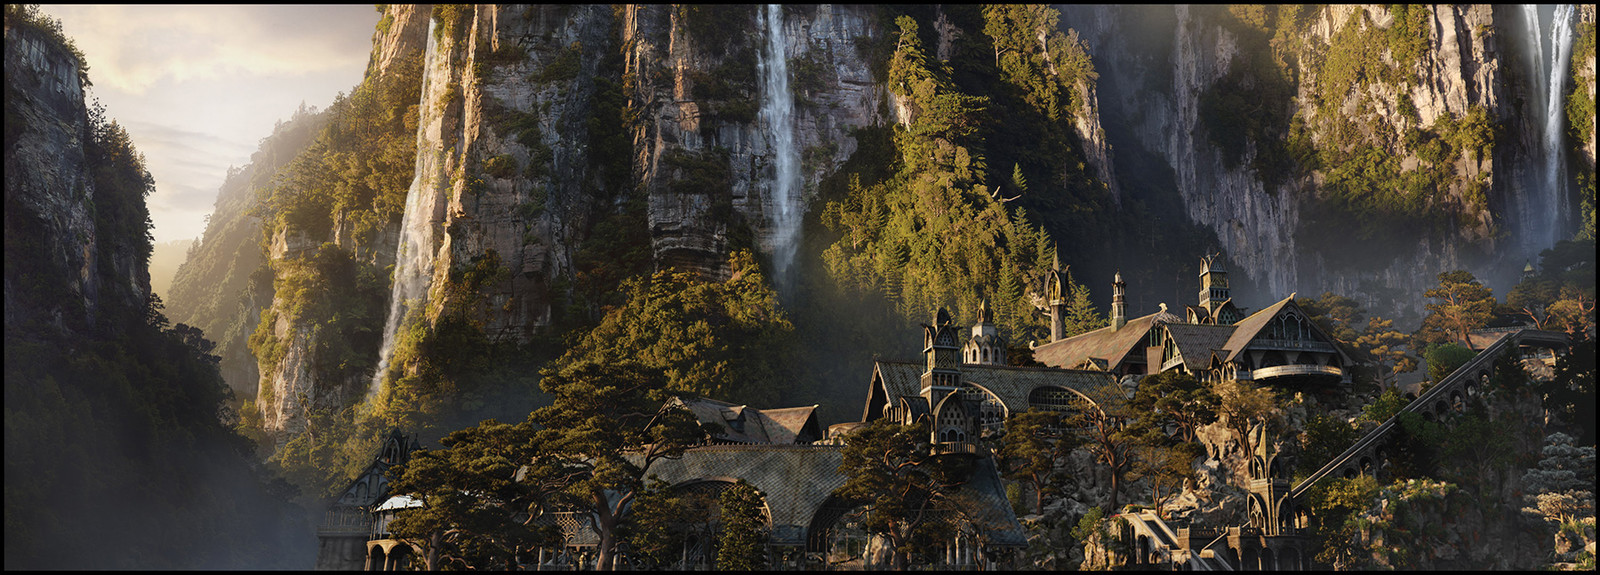 The Hobbit Trilogy / Rivendell Assorted views